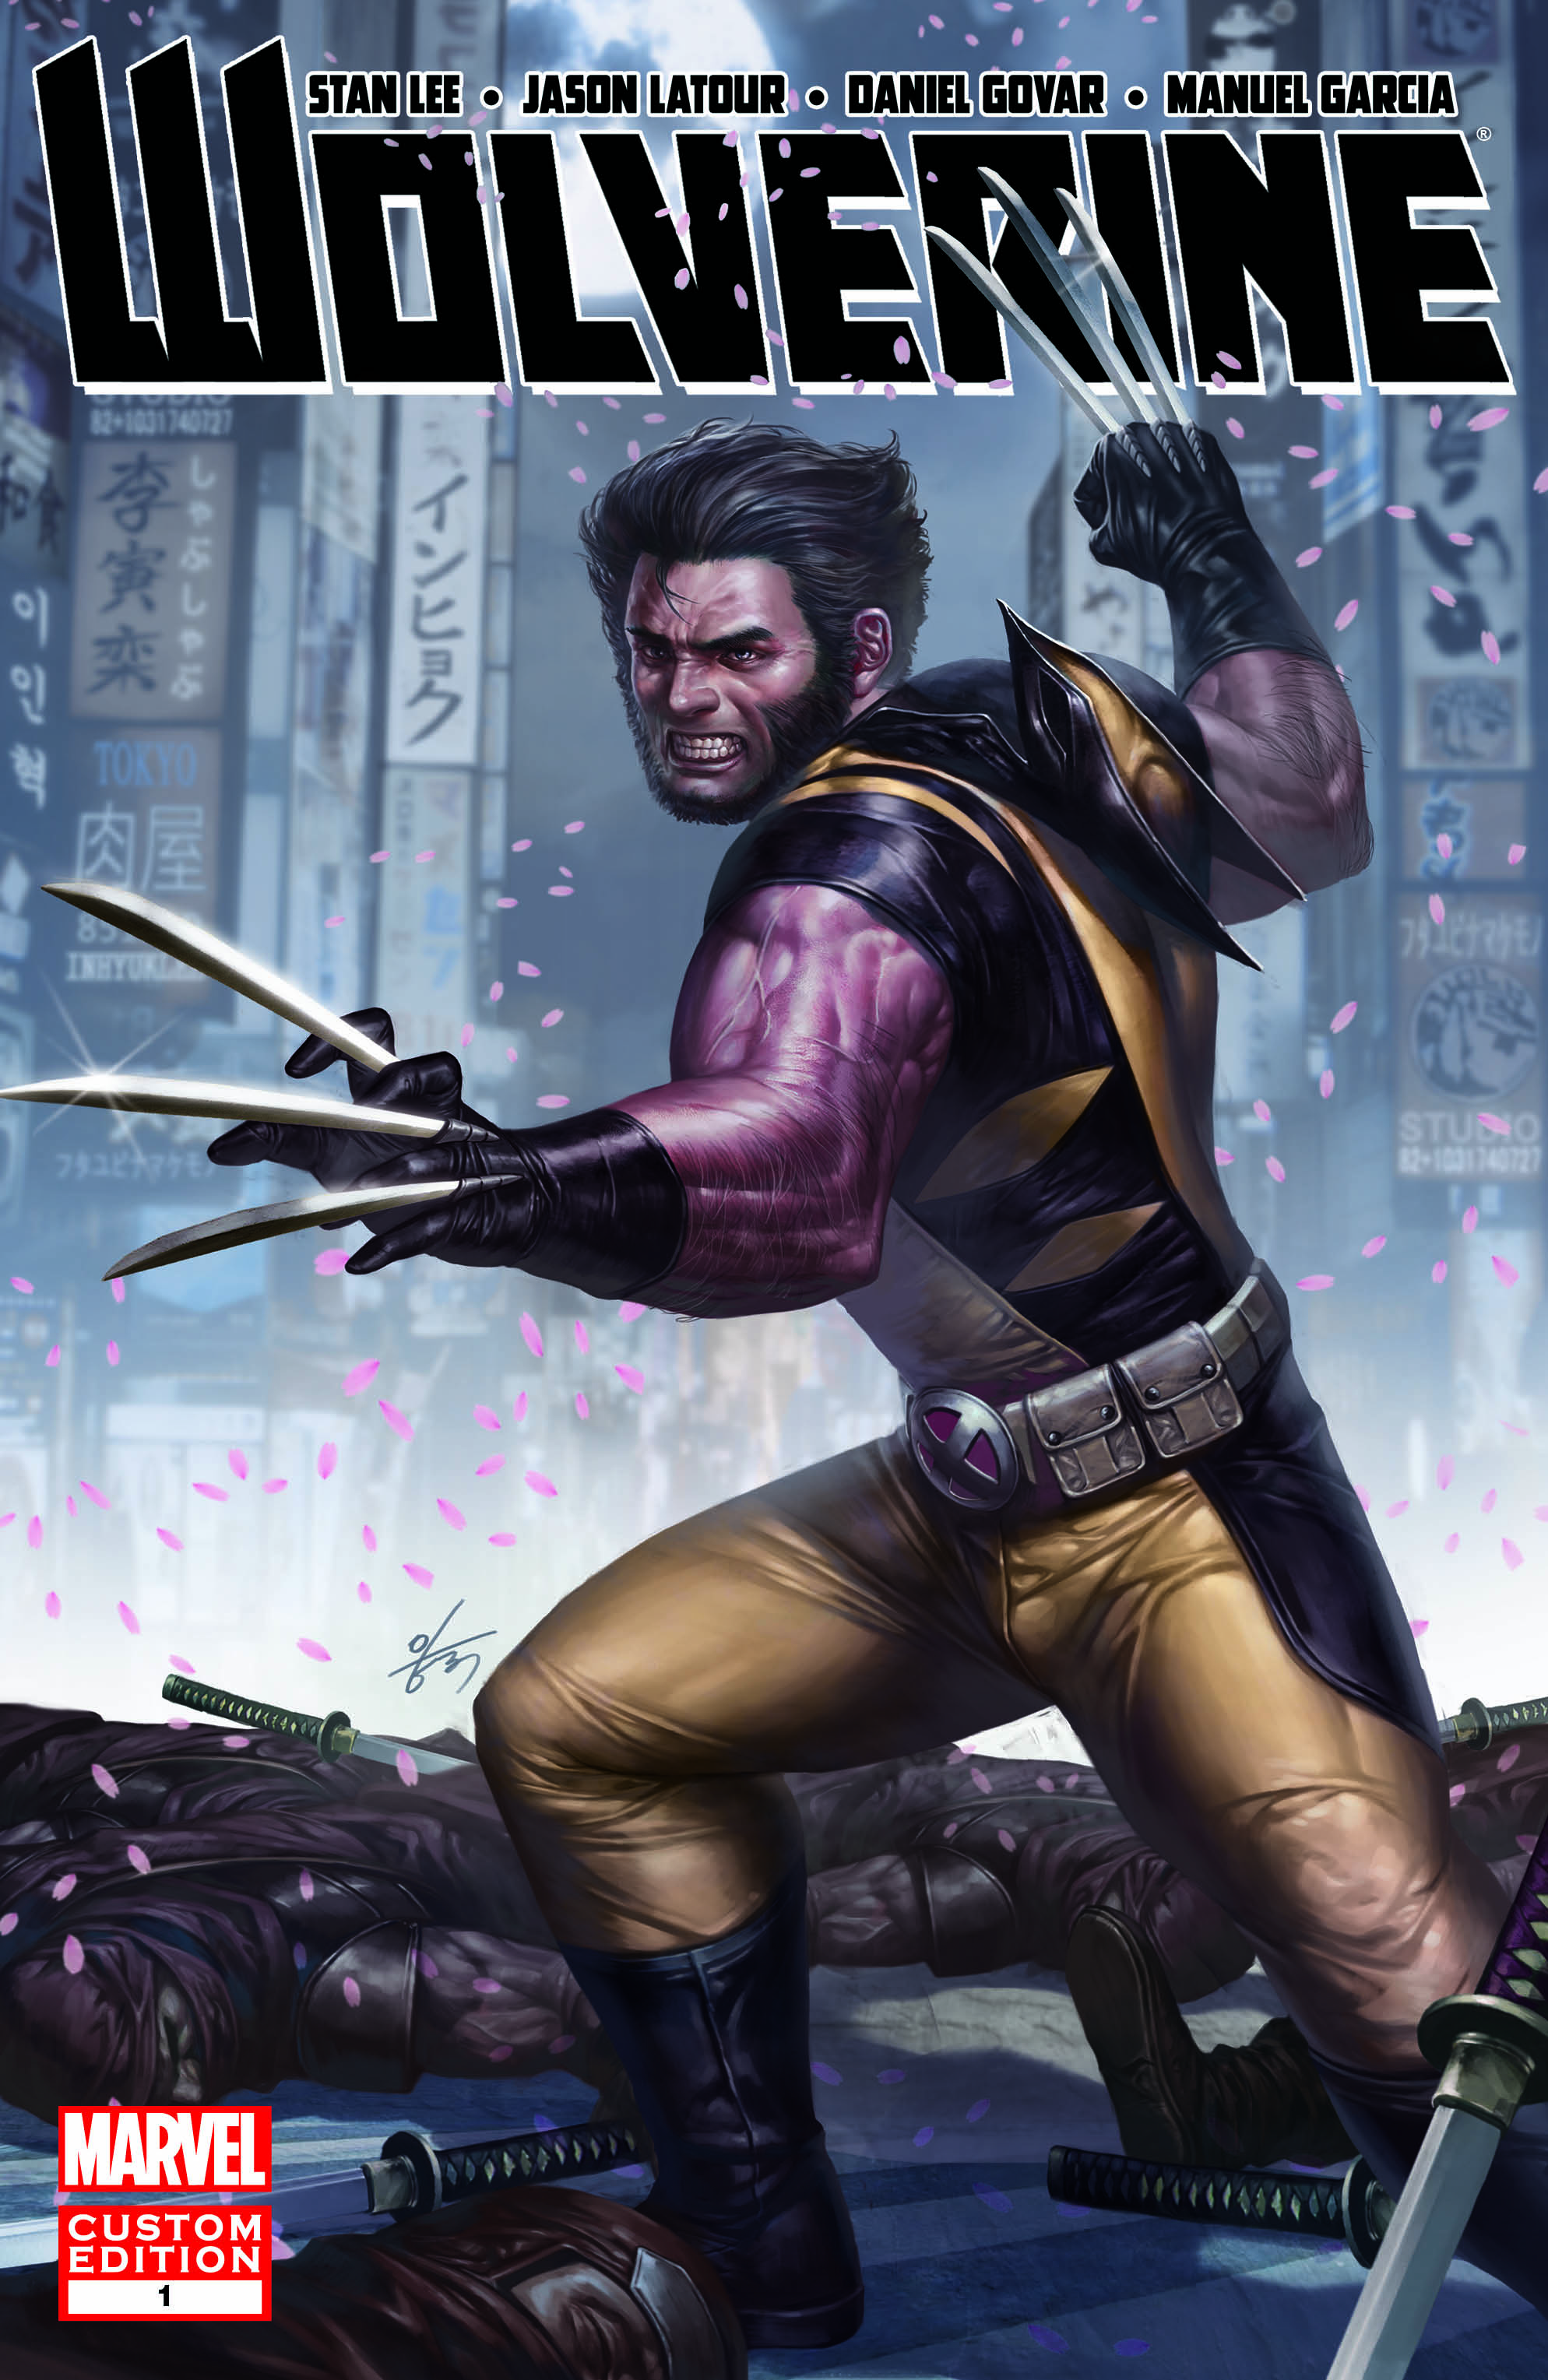 WOLVERINE: CUSTOM FOX INFINITE COMIC 1 (2013) #1